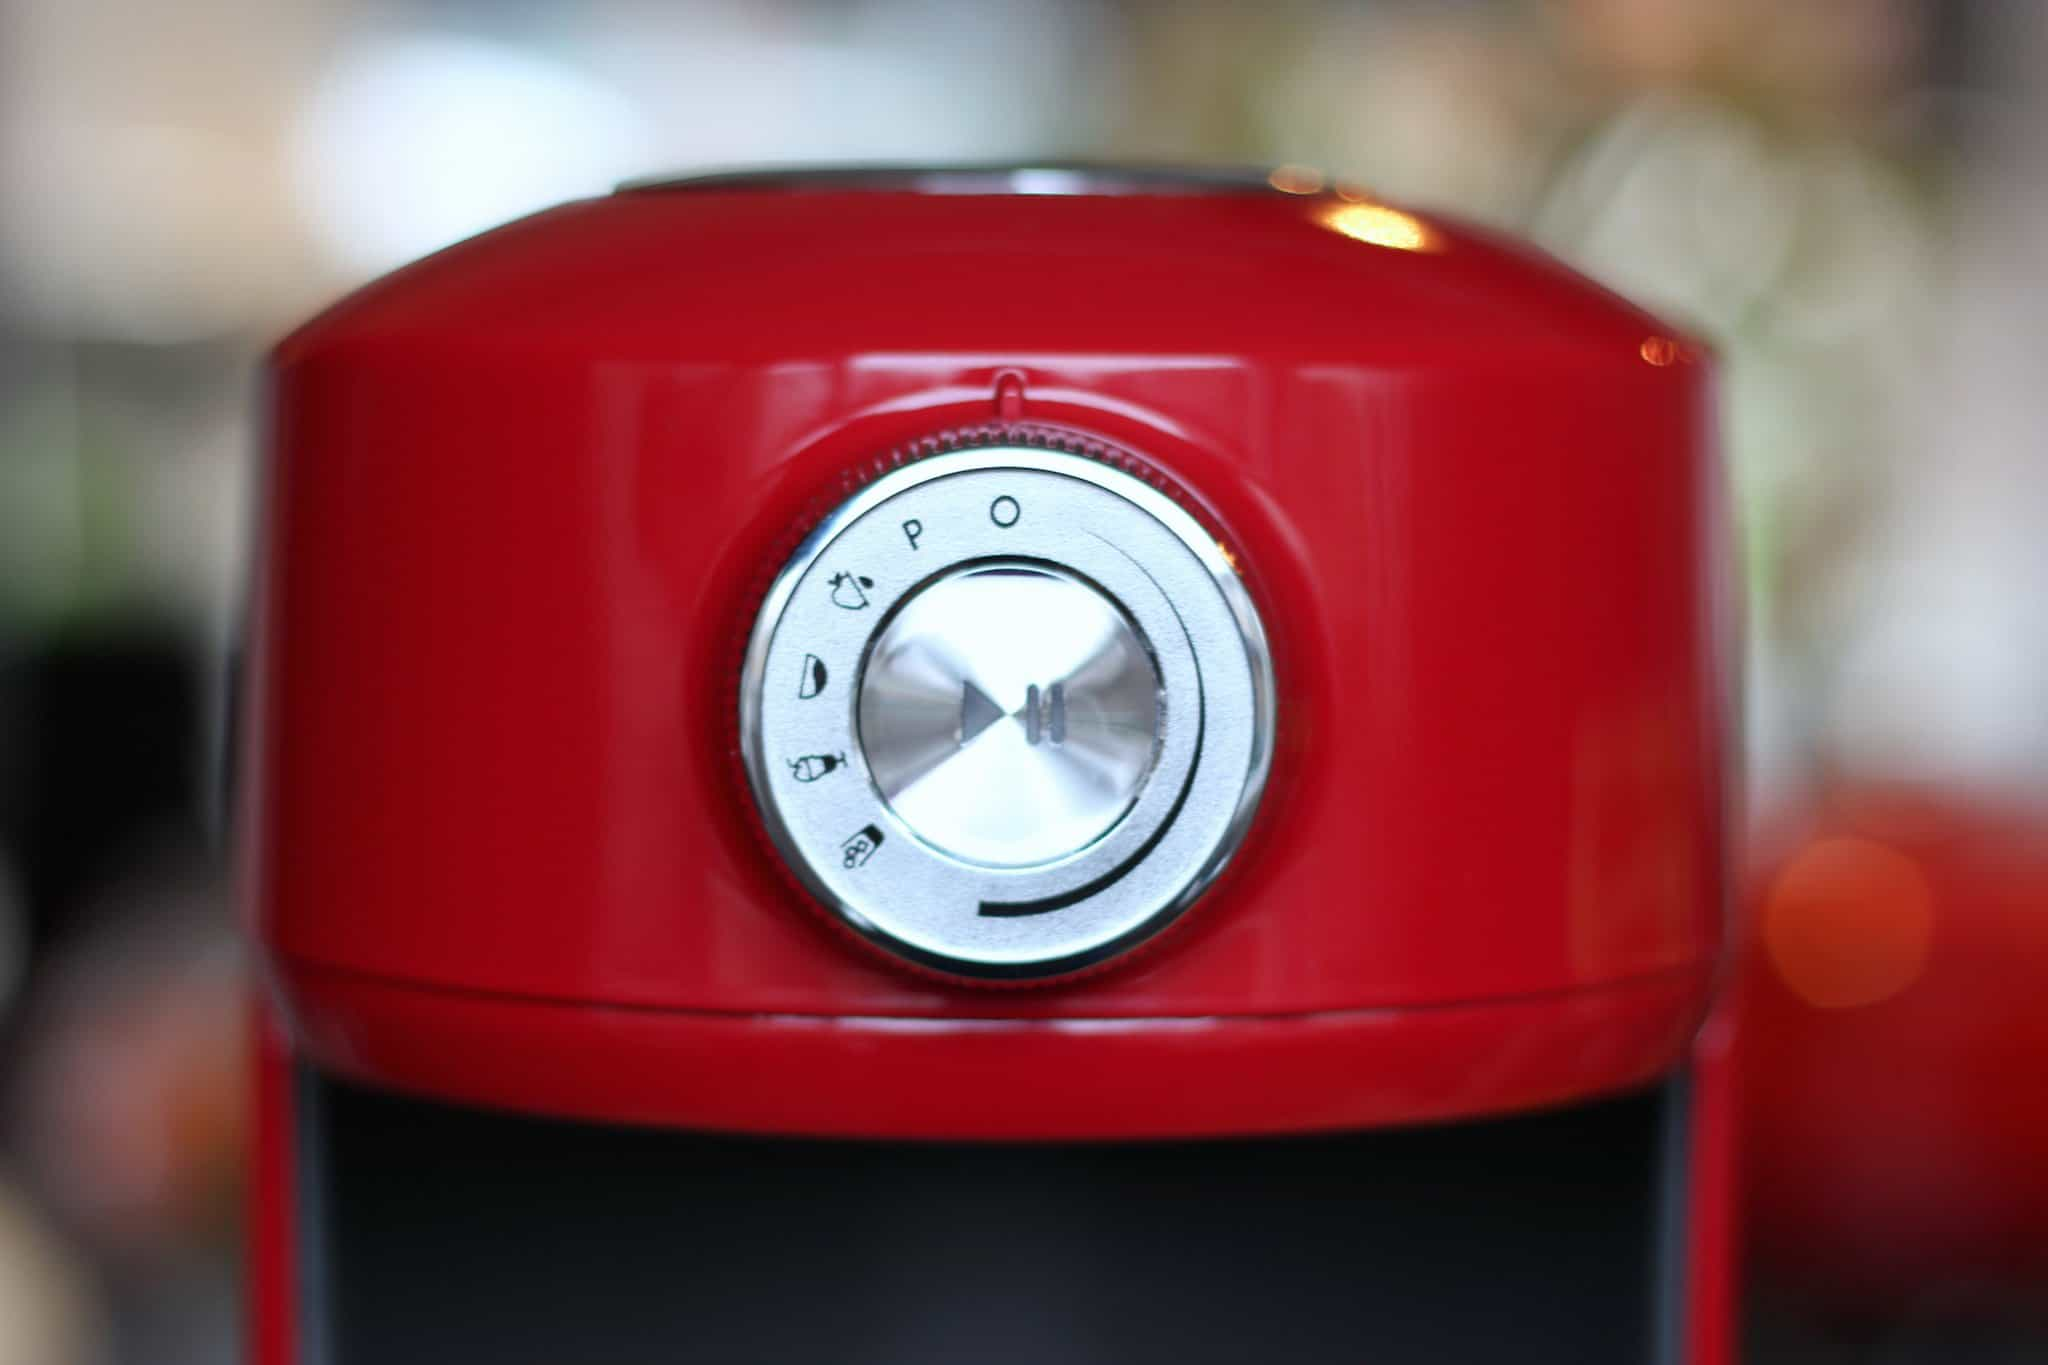 review-kitchenaid-magnetic-drive-blender-6